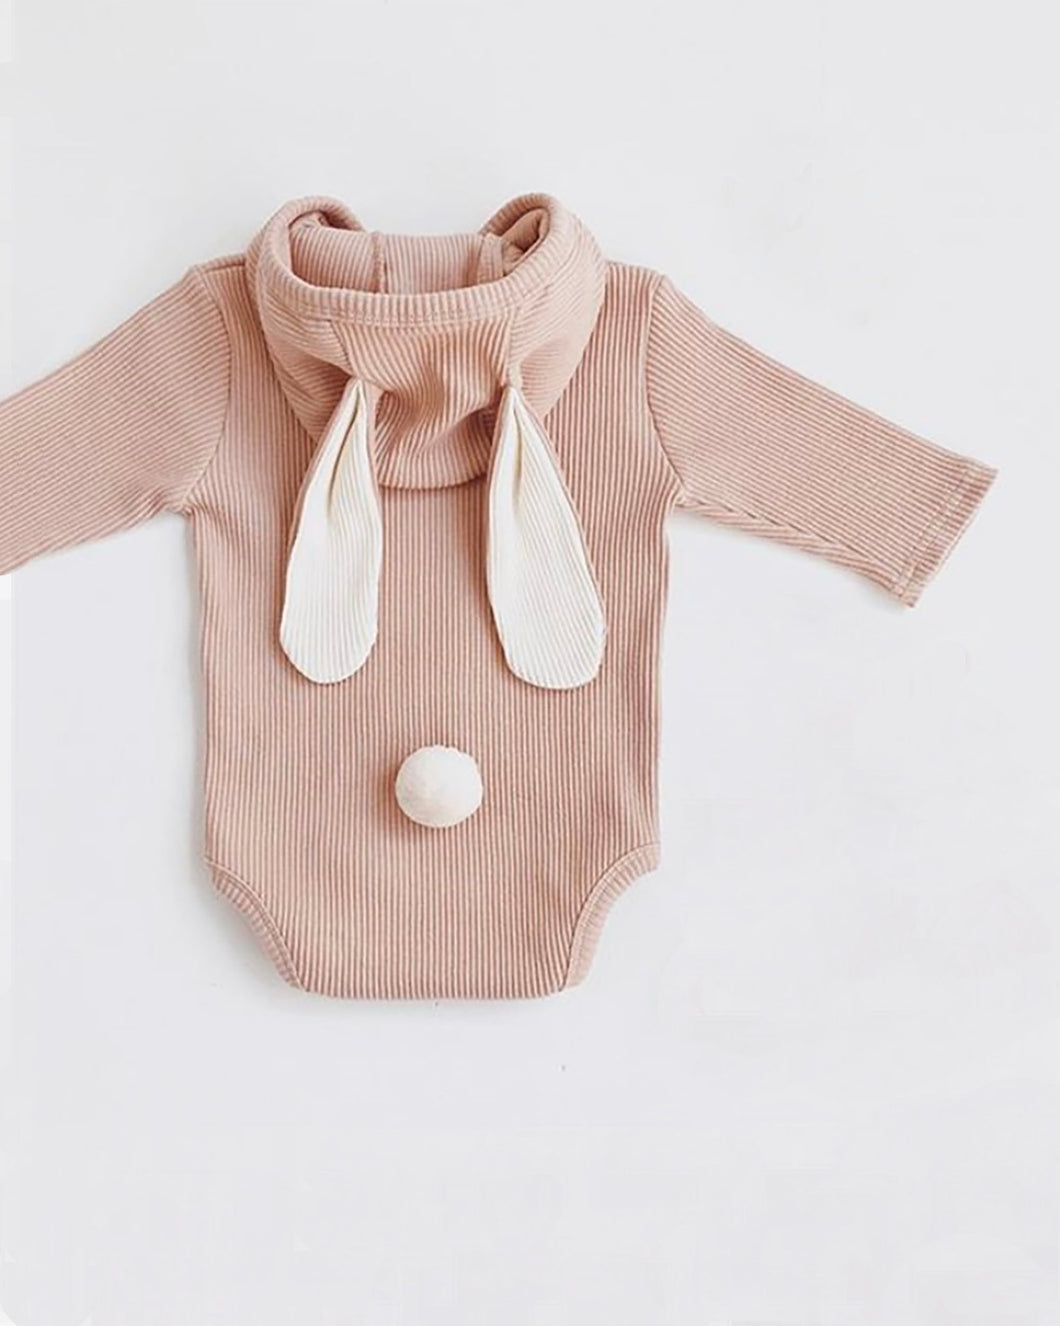 Blush Bunny Bodysuit- Long Sleeve